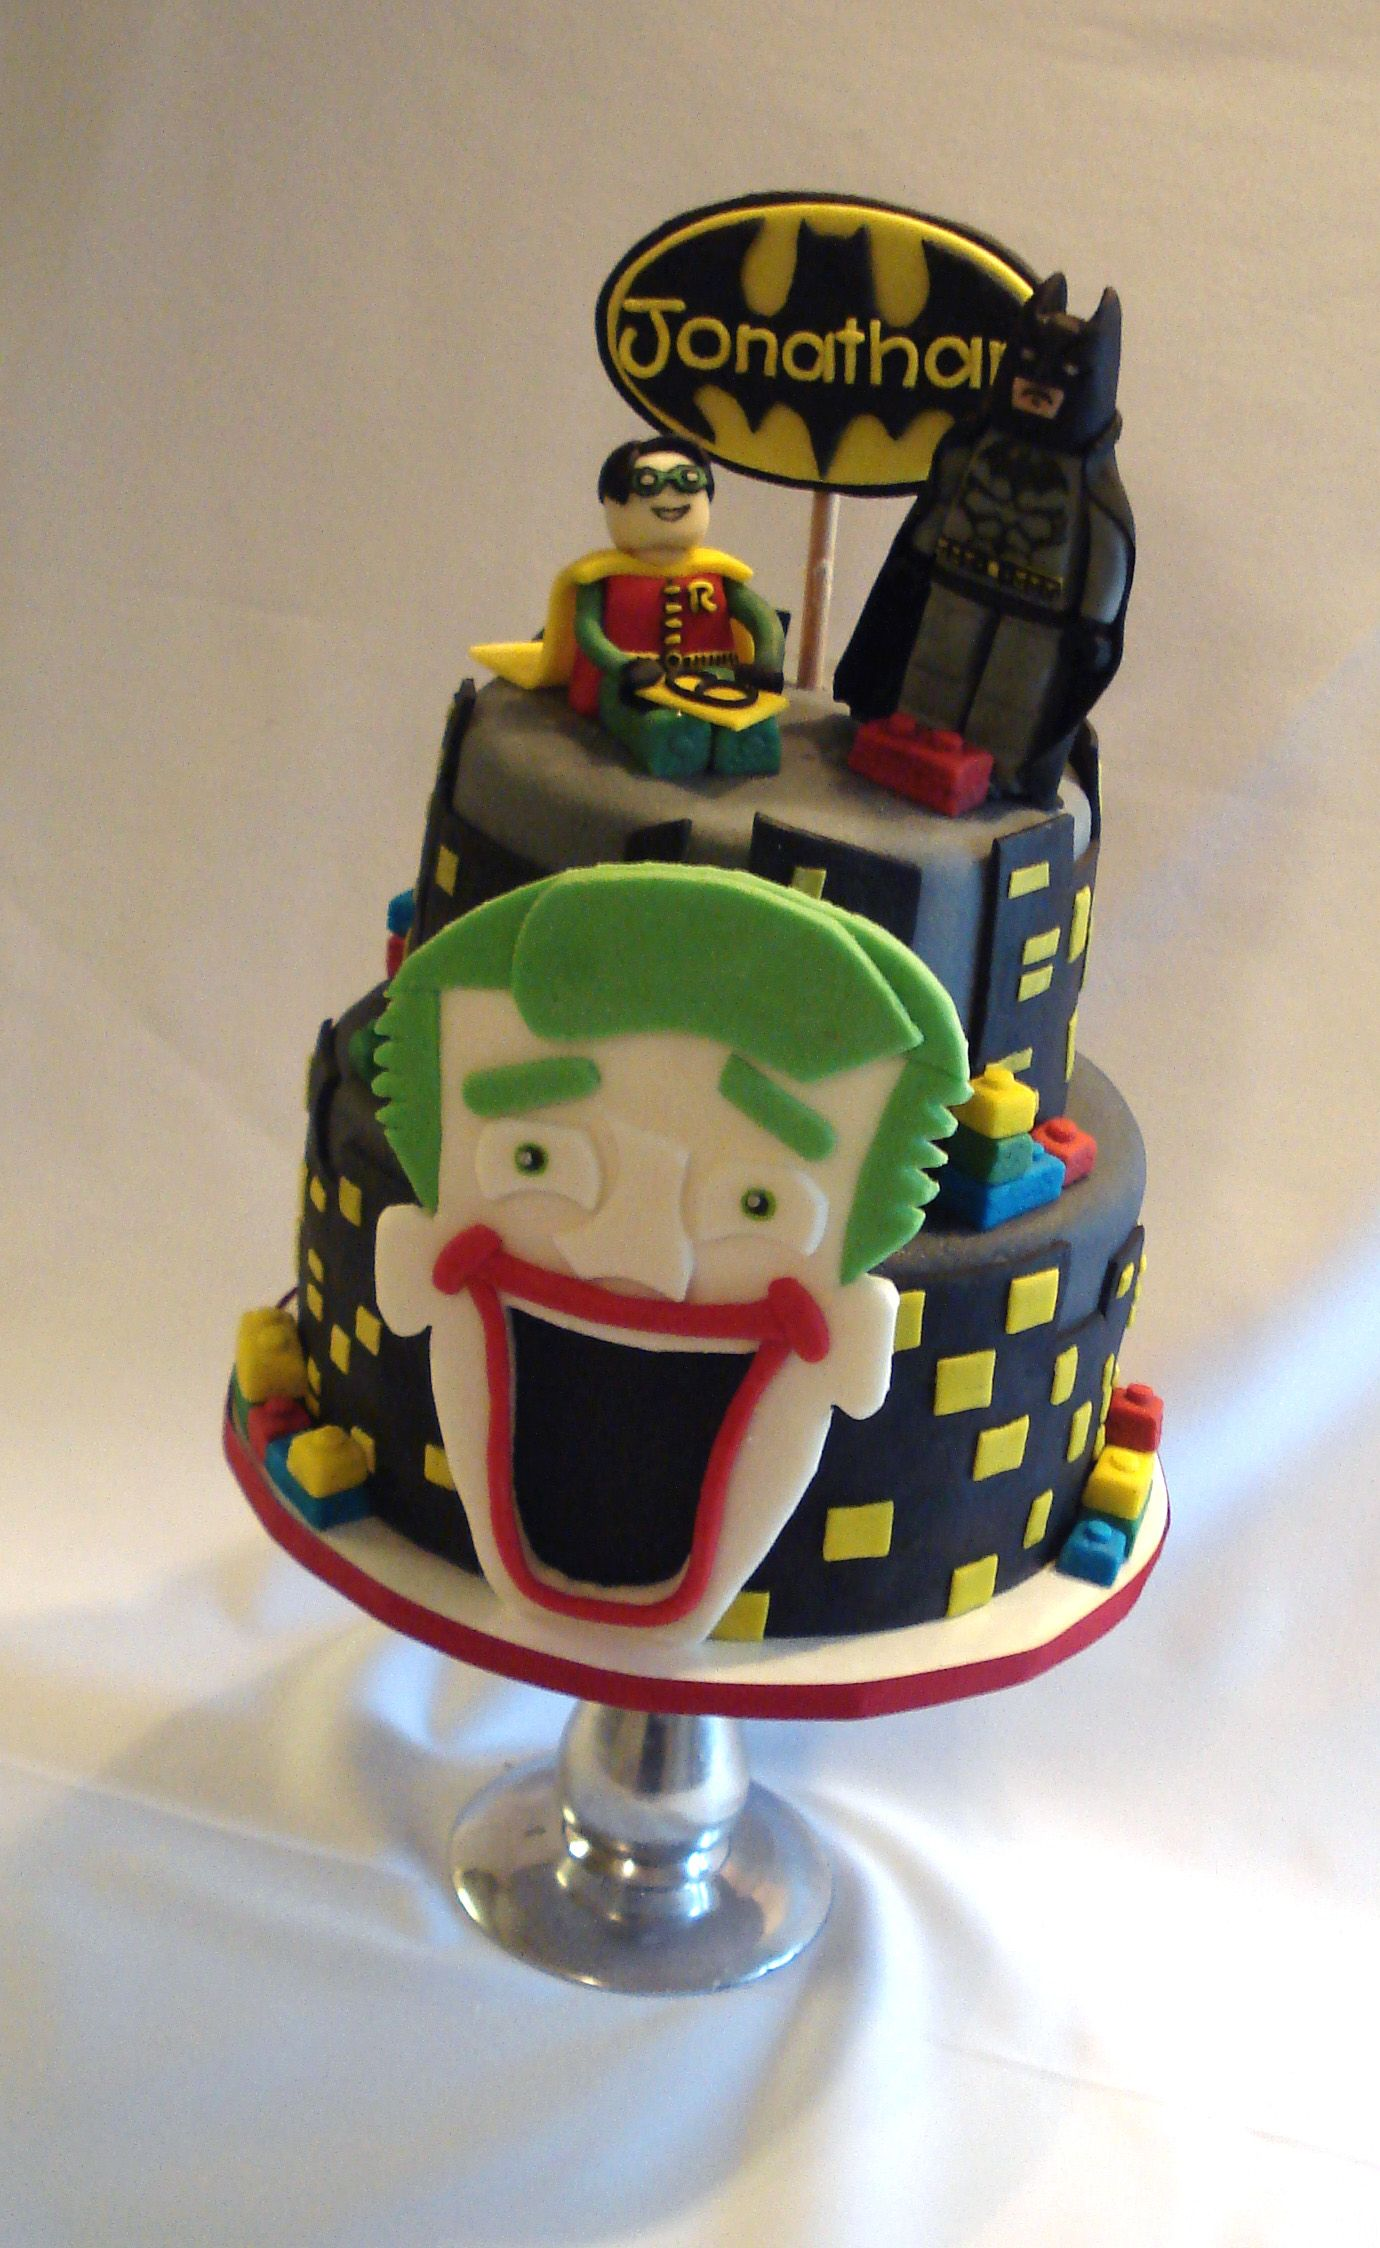 Lego batman Inspired cake All fondant cake with fondant figures and